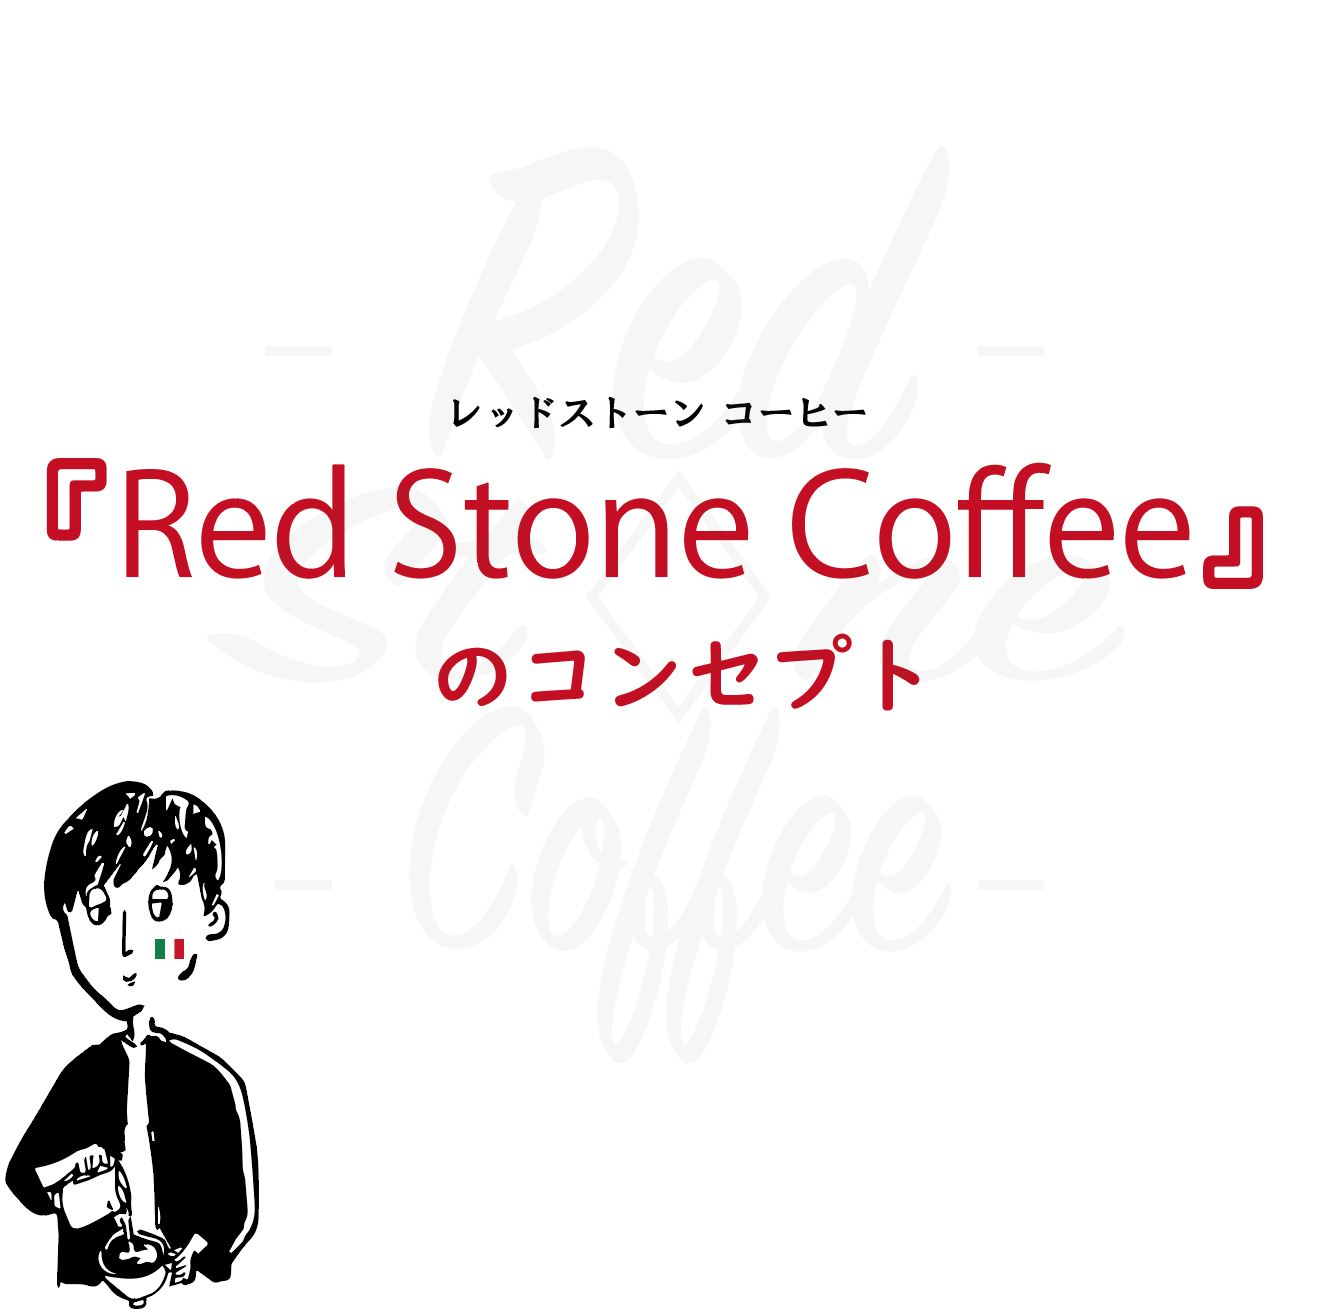 Red Stone Coffee コンセプト